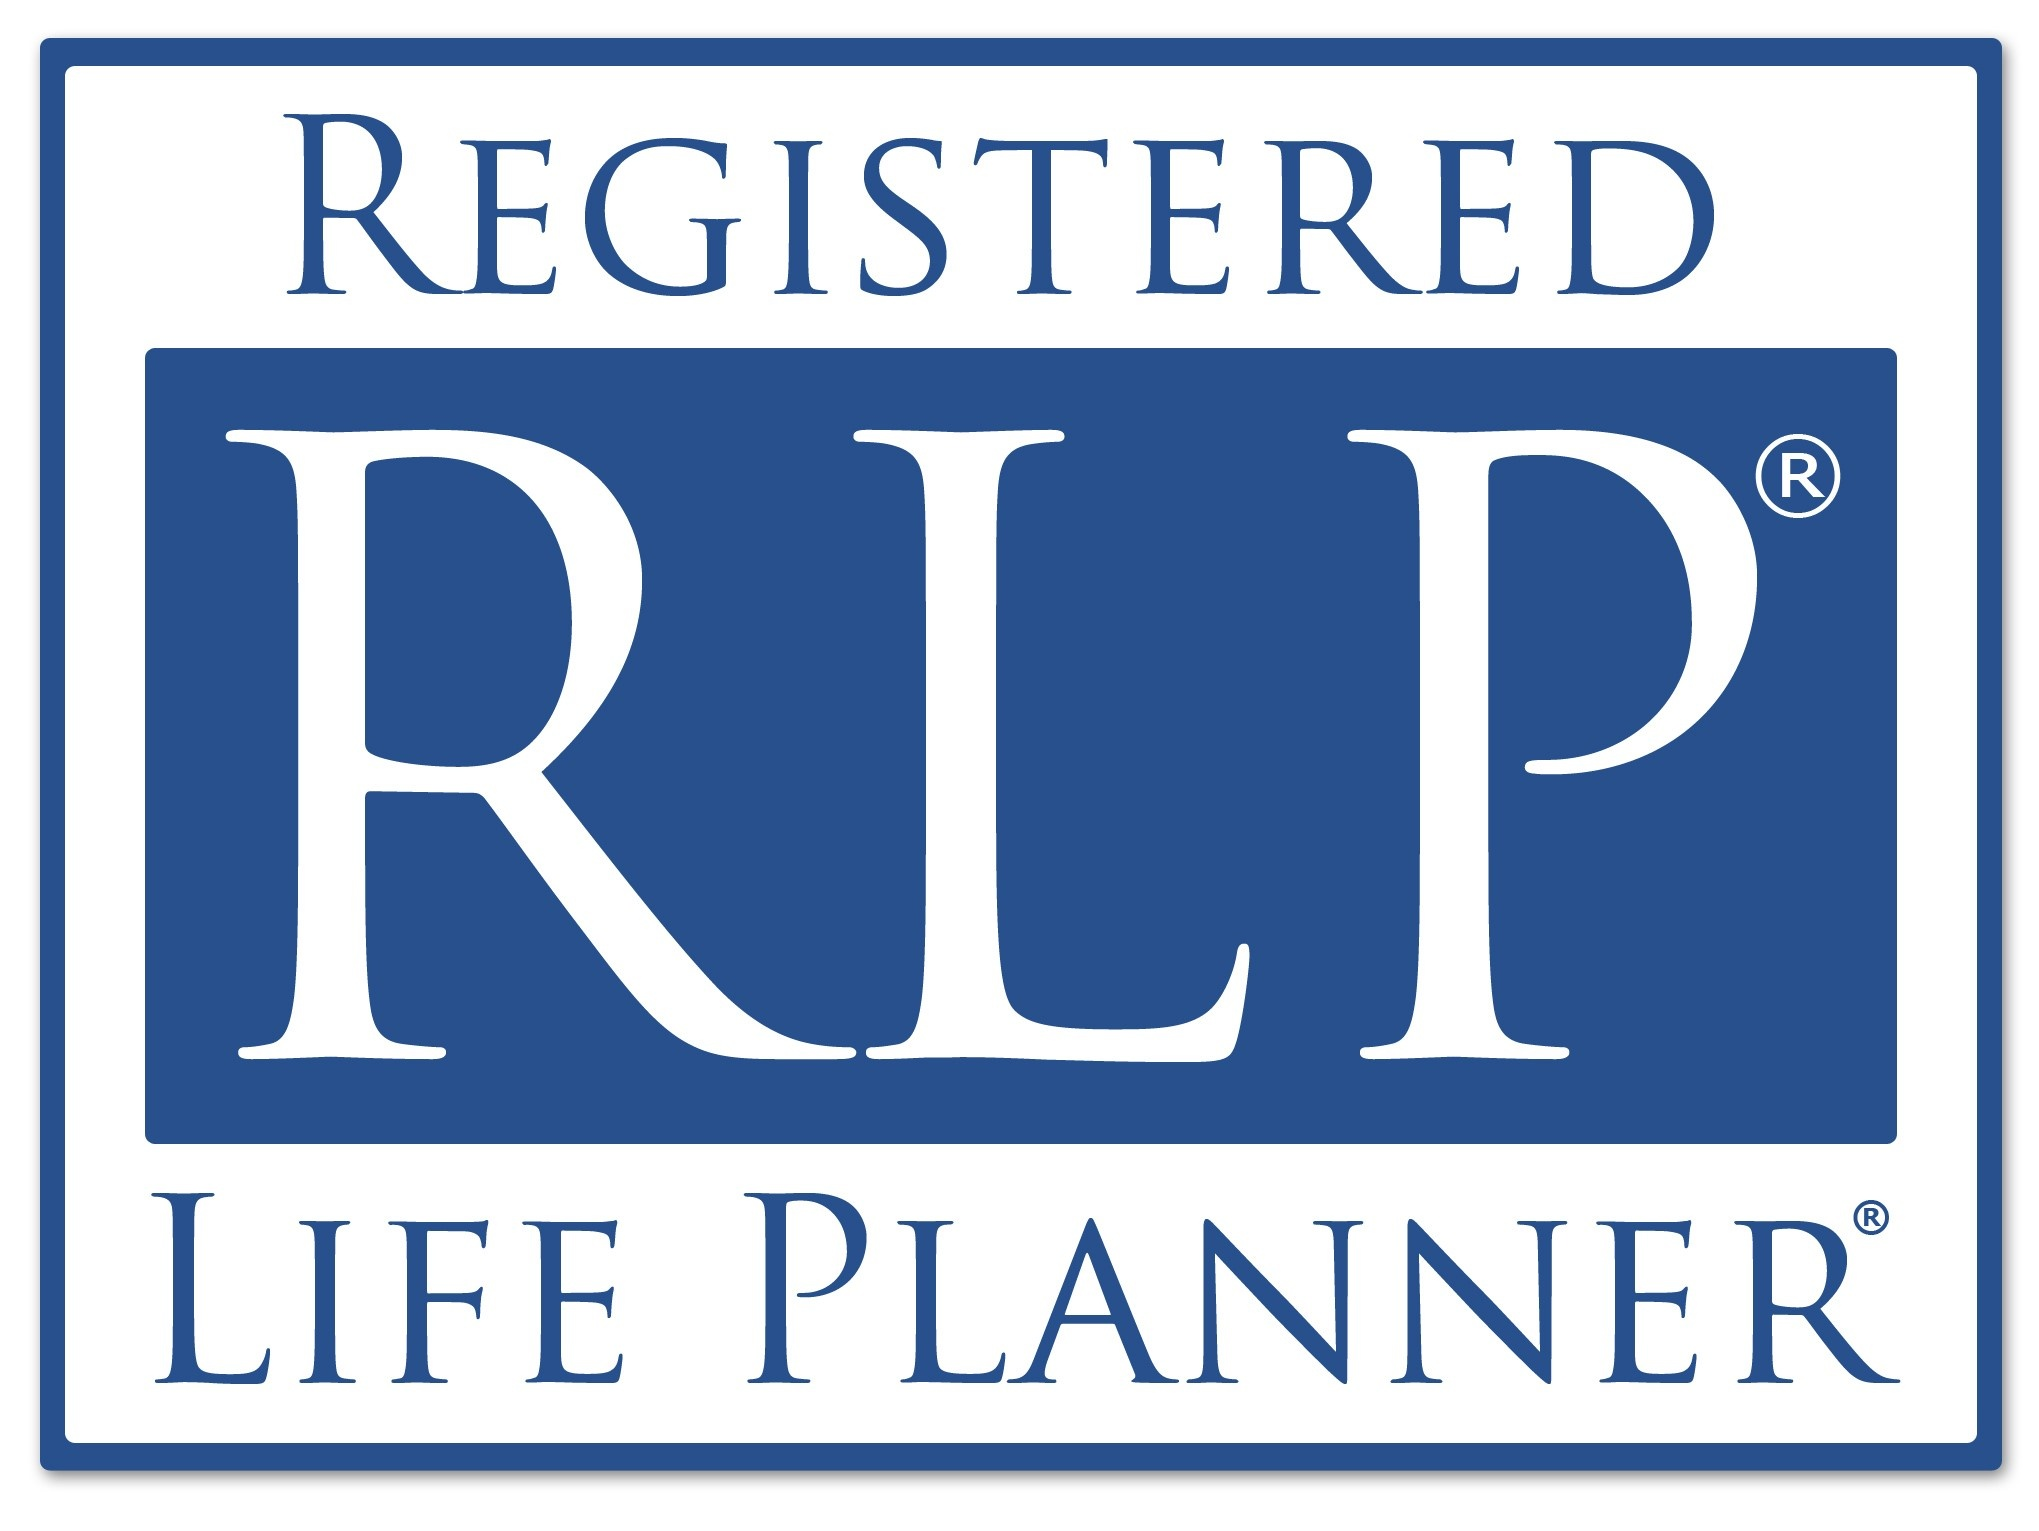 Registered Life Planner logo